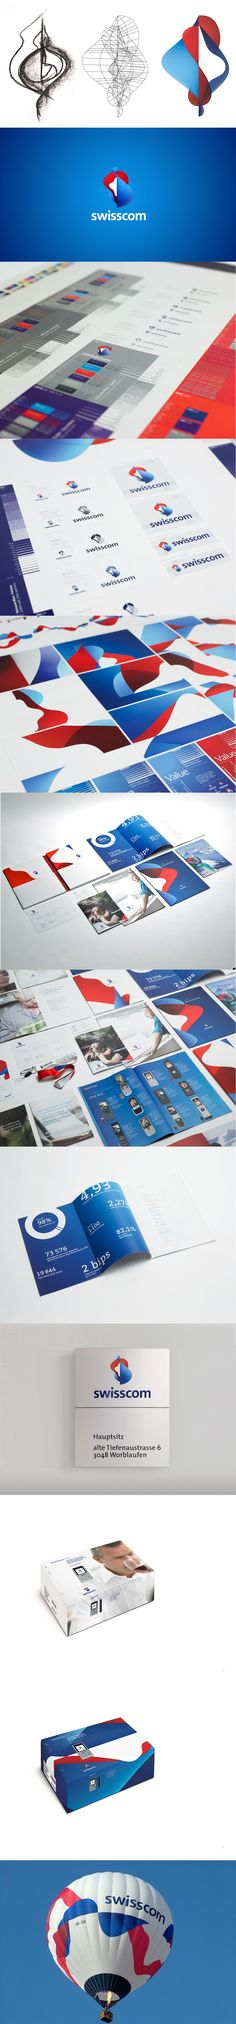 Swisscom #brand #identity by Moving Brands I could eat this for breakfast | #stationary #corporate #design #corporatedesign #identity #branding #marketing < repinned by www.BlickeDeeler.de | Take a look at www.LogoGestaltung-Hamburg.de